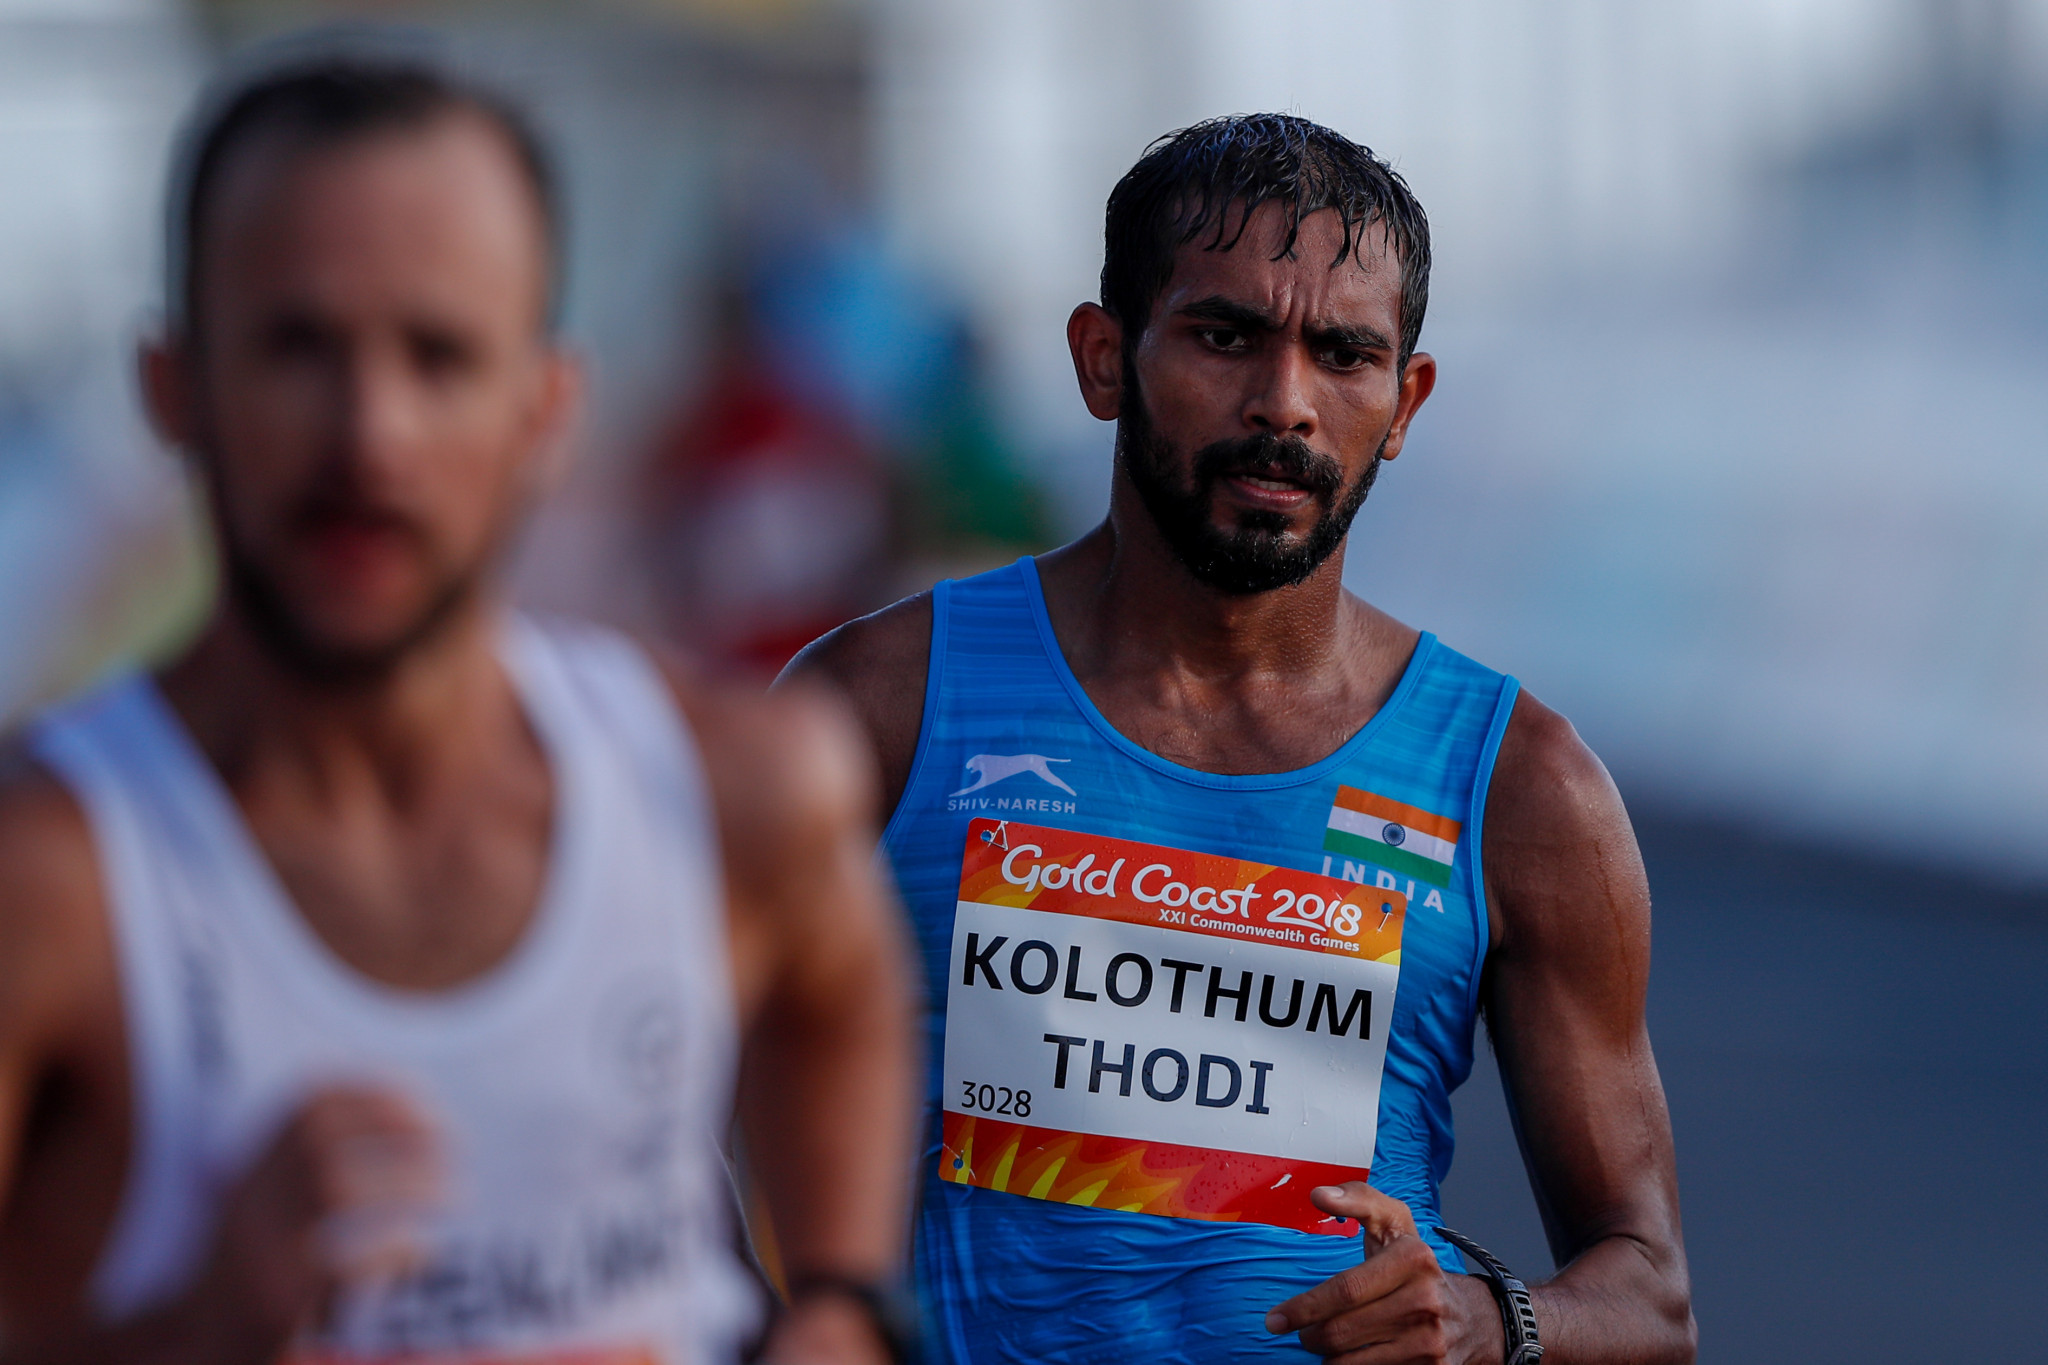 Race walker Irfan Kolothum Thodi finished 13th in the 20km event at Gold Coast 2018 ©Getty Images